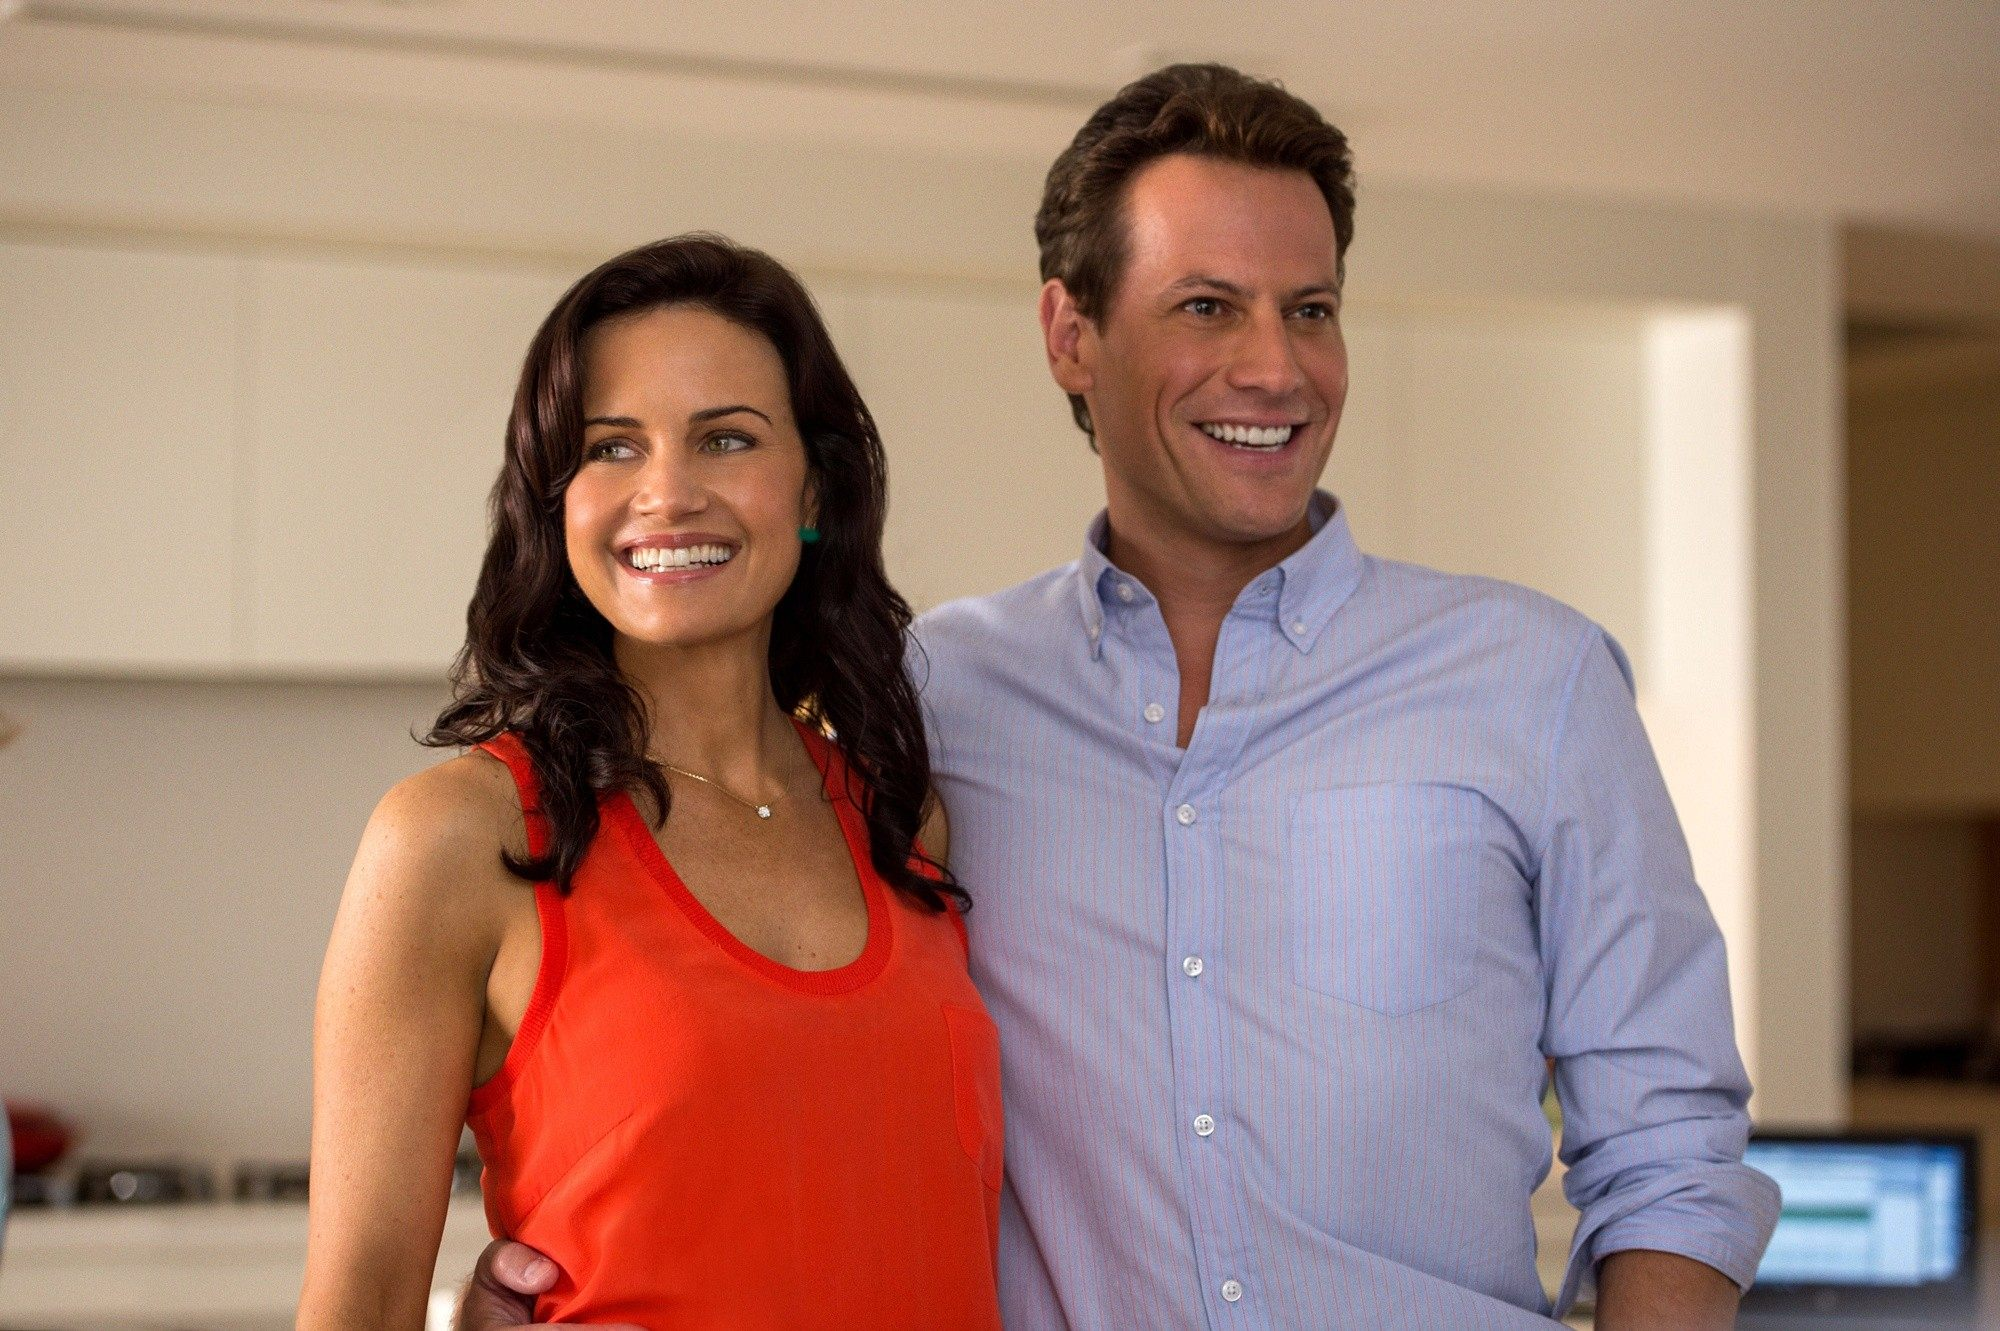 Carla Gugino stars as Emma and Ioan Gruffudd stars as Daniel Riddick in Warner Bros. Pictures' San Andreas (2015)